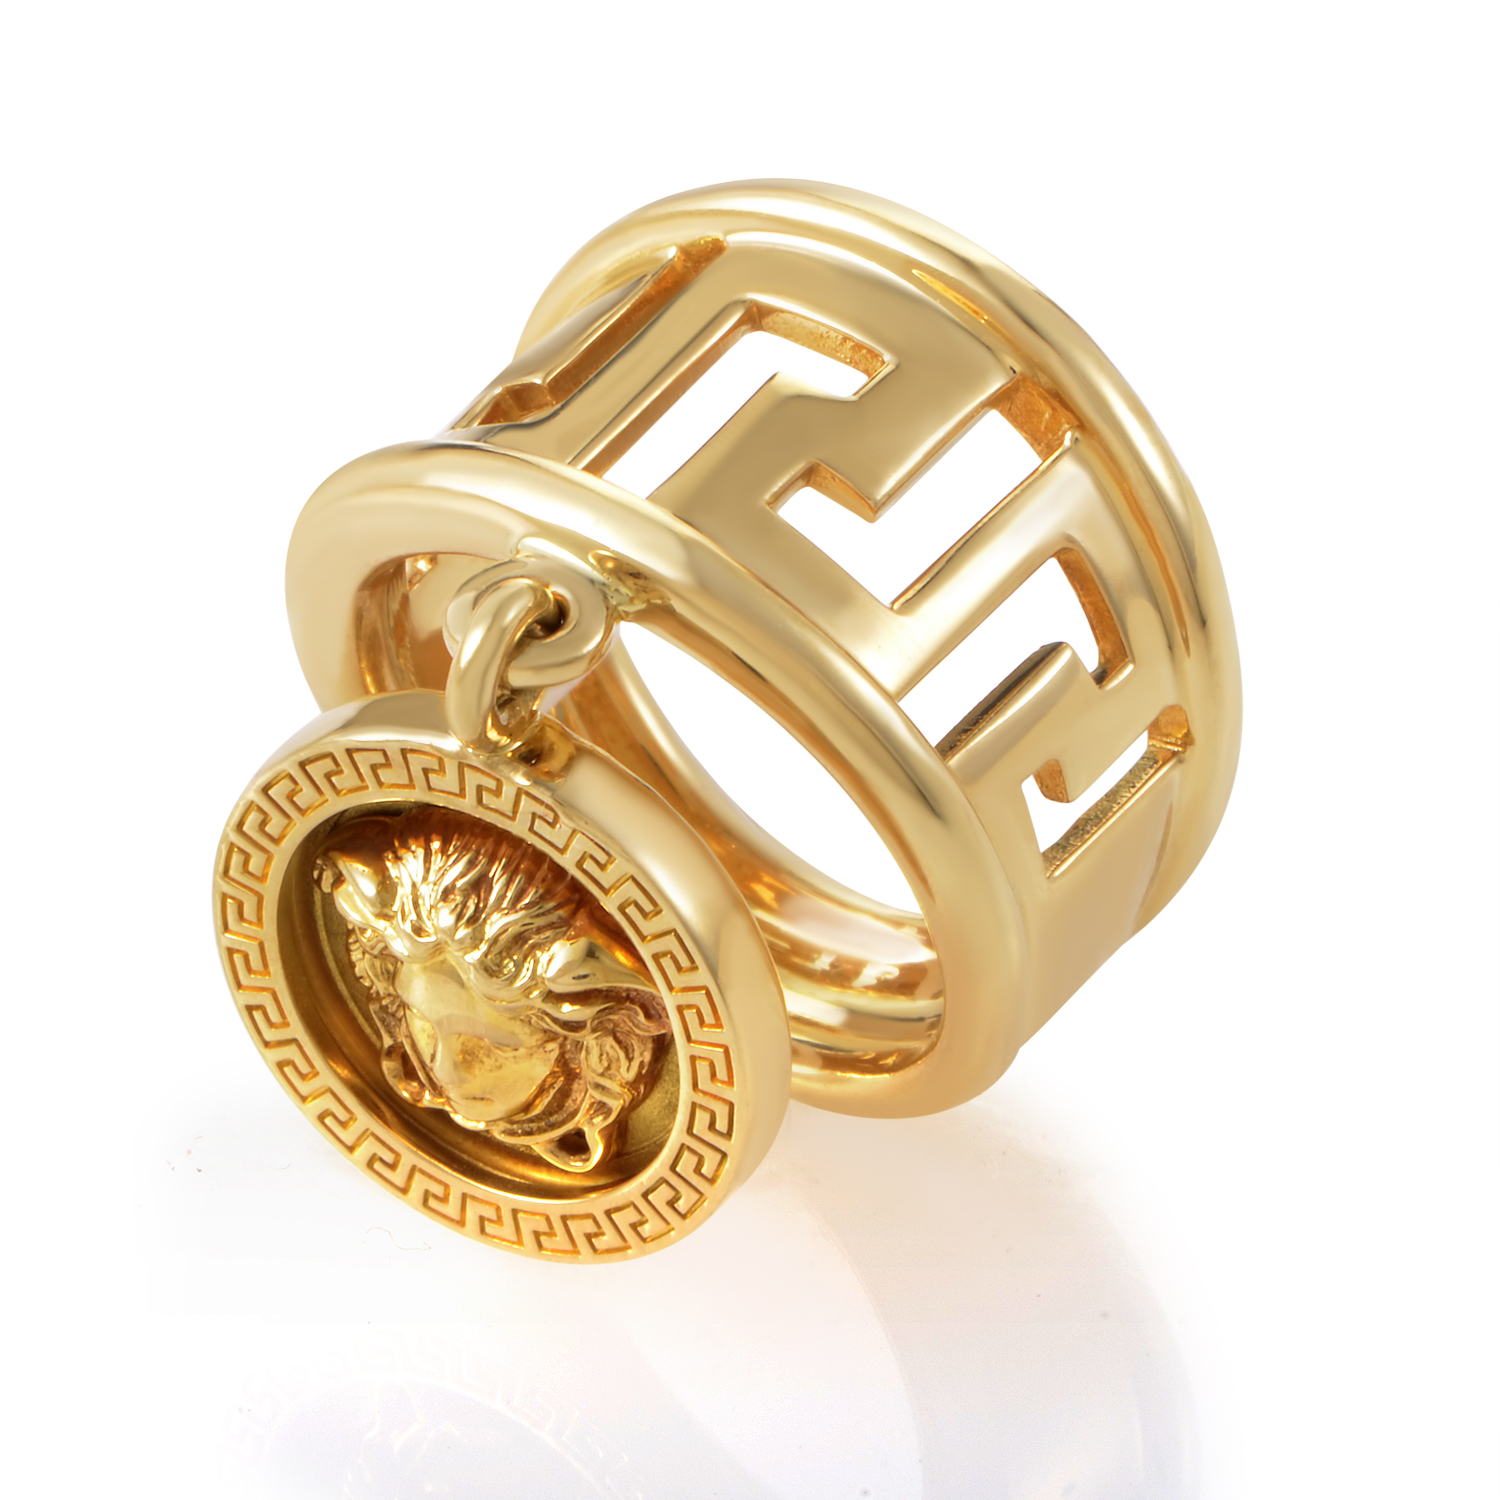 Versace 18K Yellow Gold Medusa Head Charm Ring